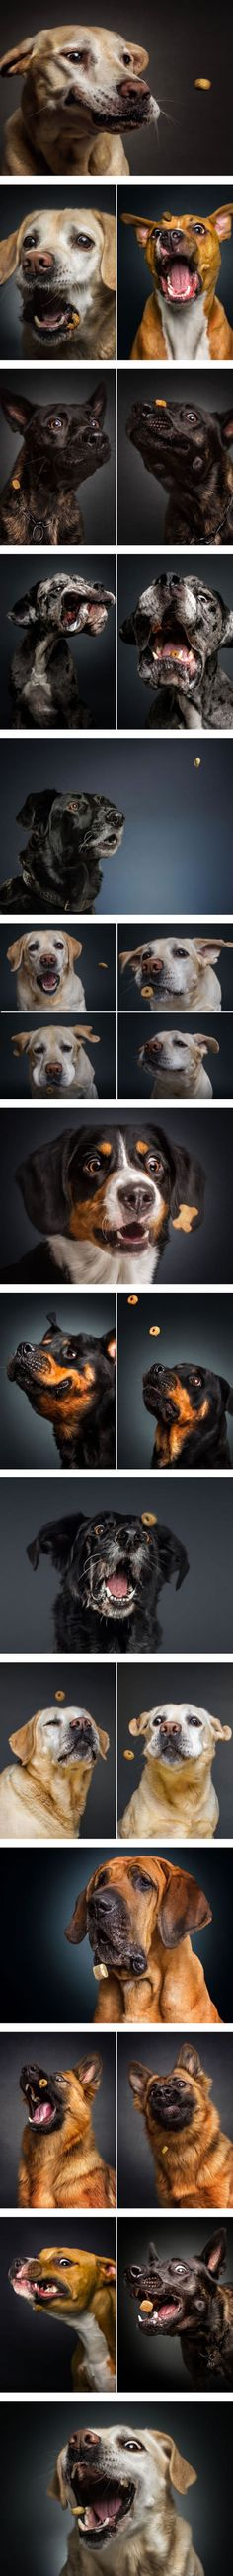 Photographer Captures The Hilarious Expressions of Dogs Catching Treats